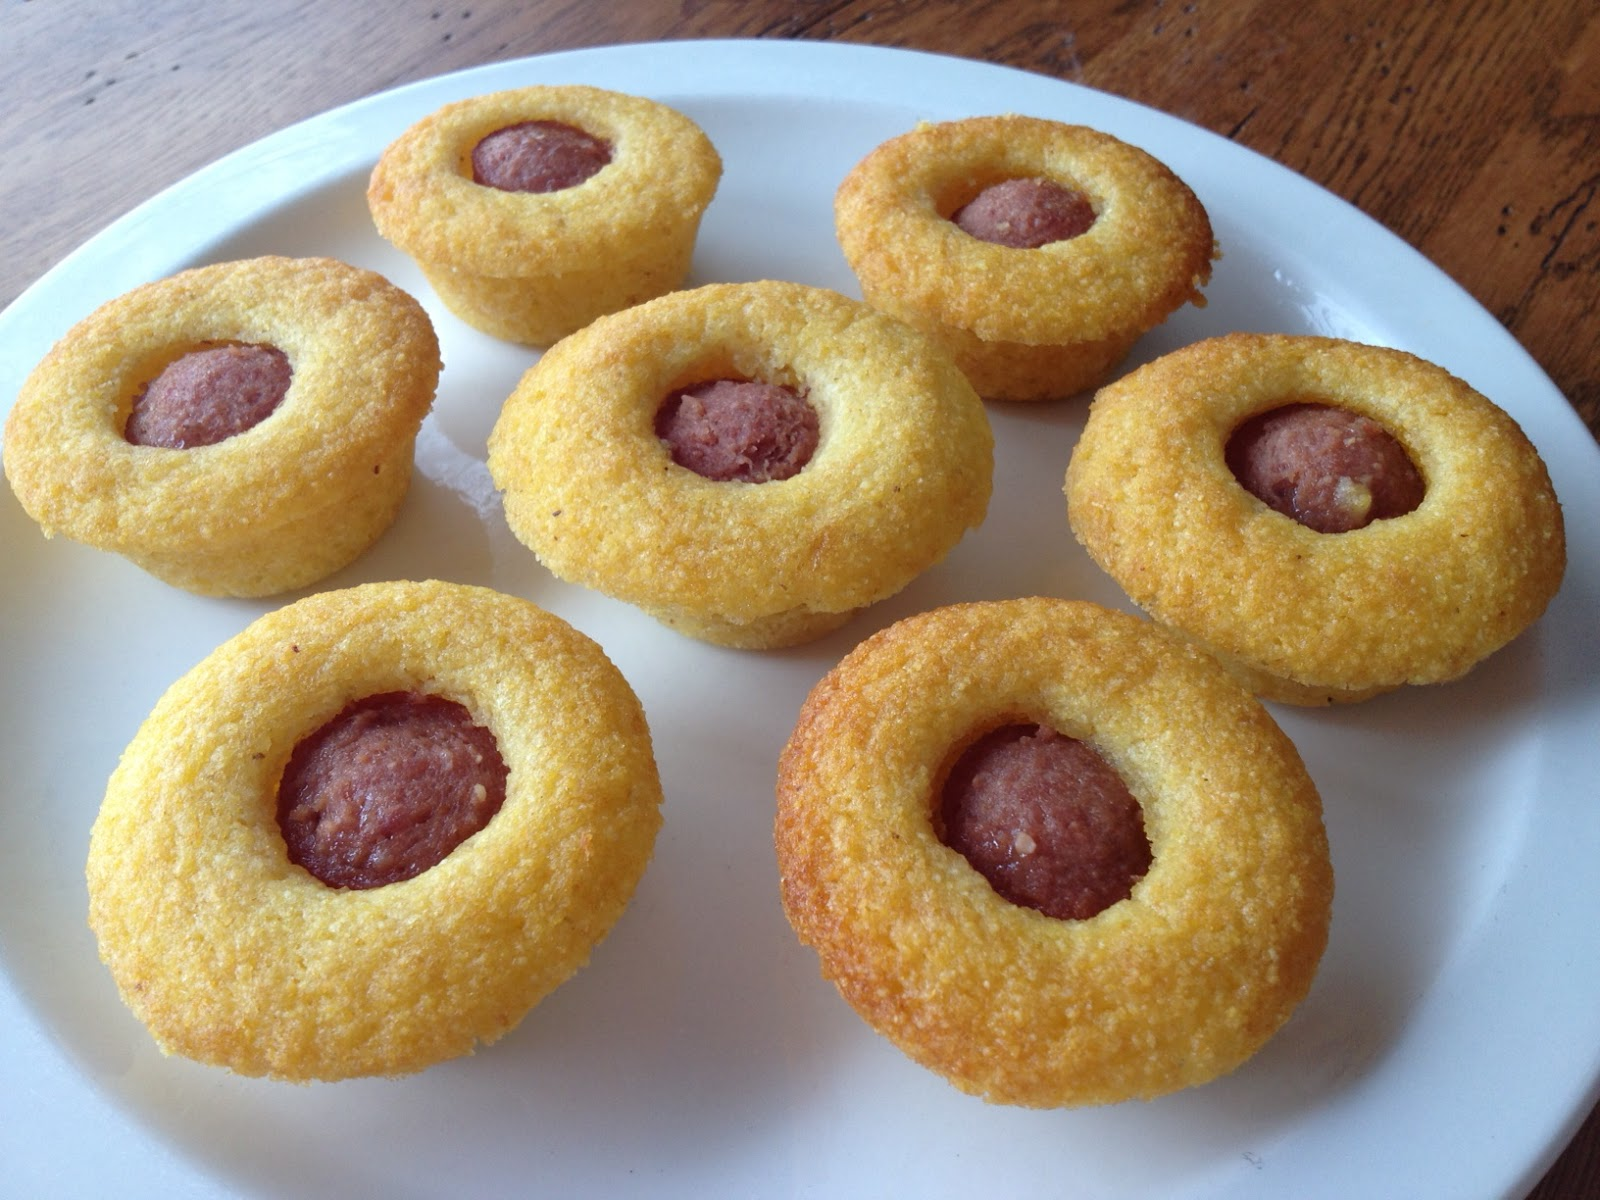 Cora Cooks: Mini Corn Dog Muffins - Food for Fun